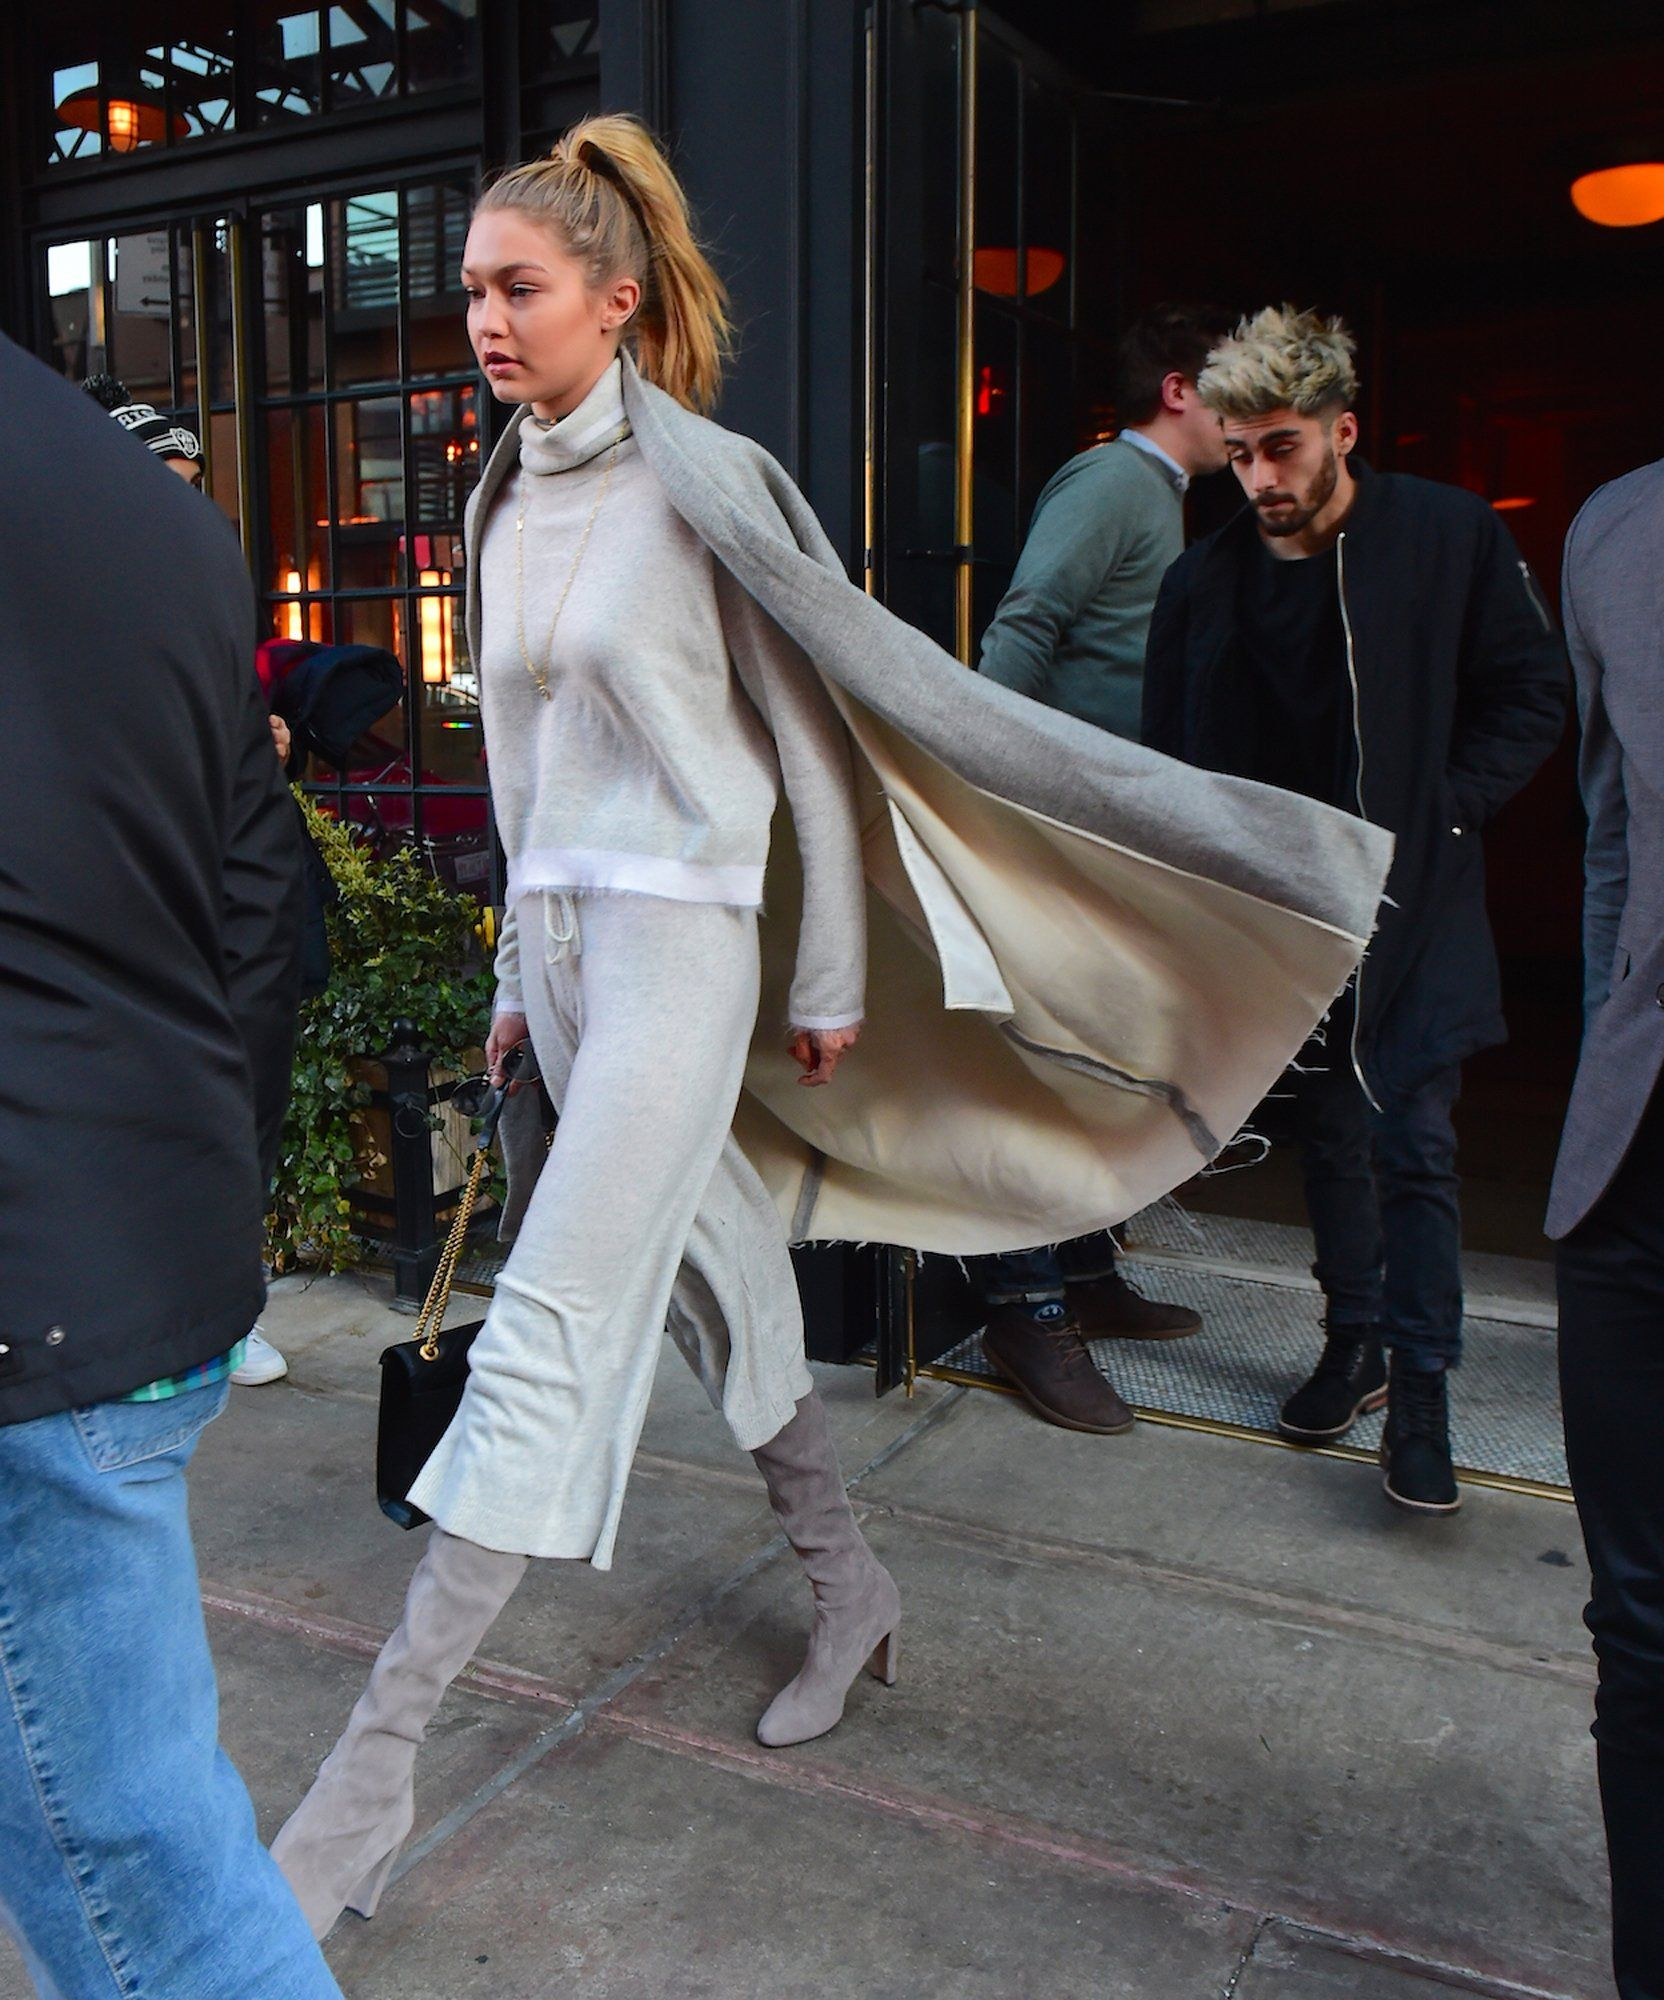 Cropped Pants in Winter? Gigi Hadid Says Yes, You Can